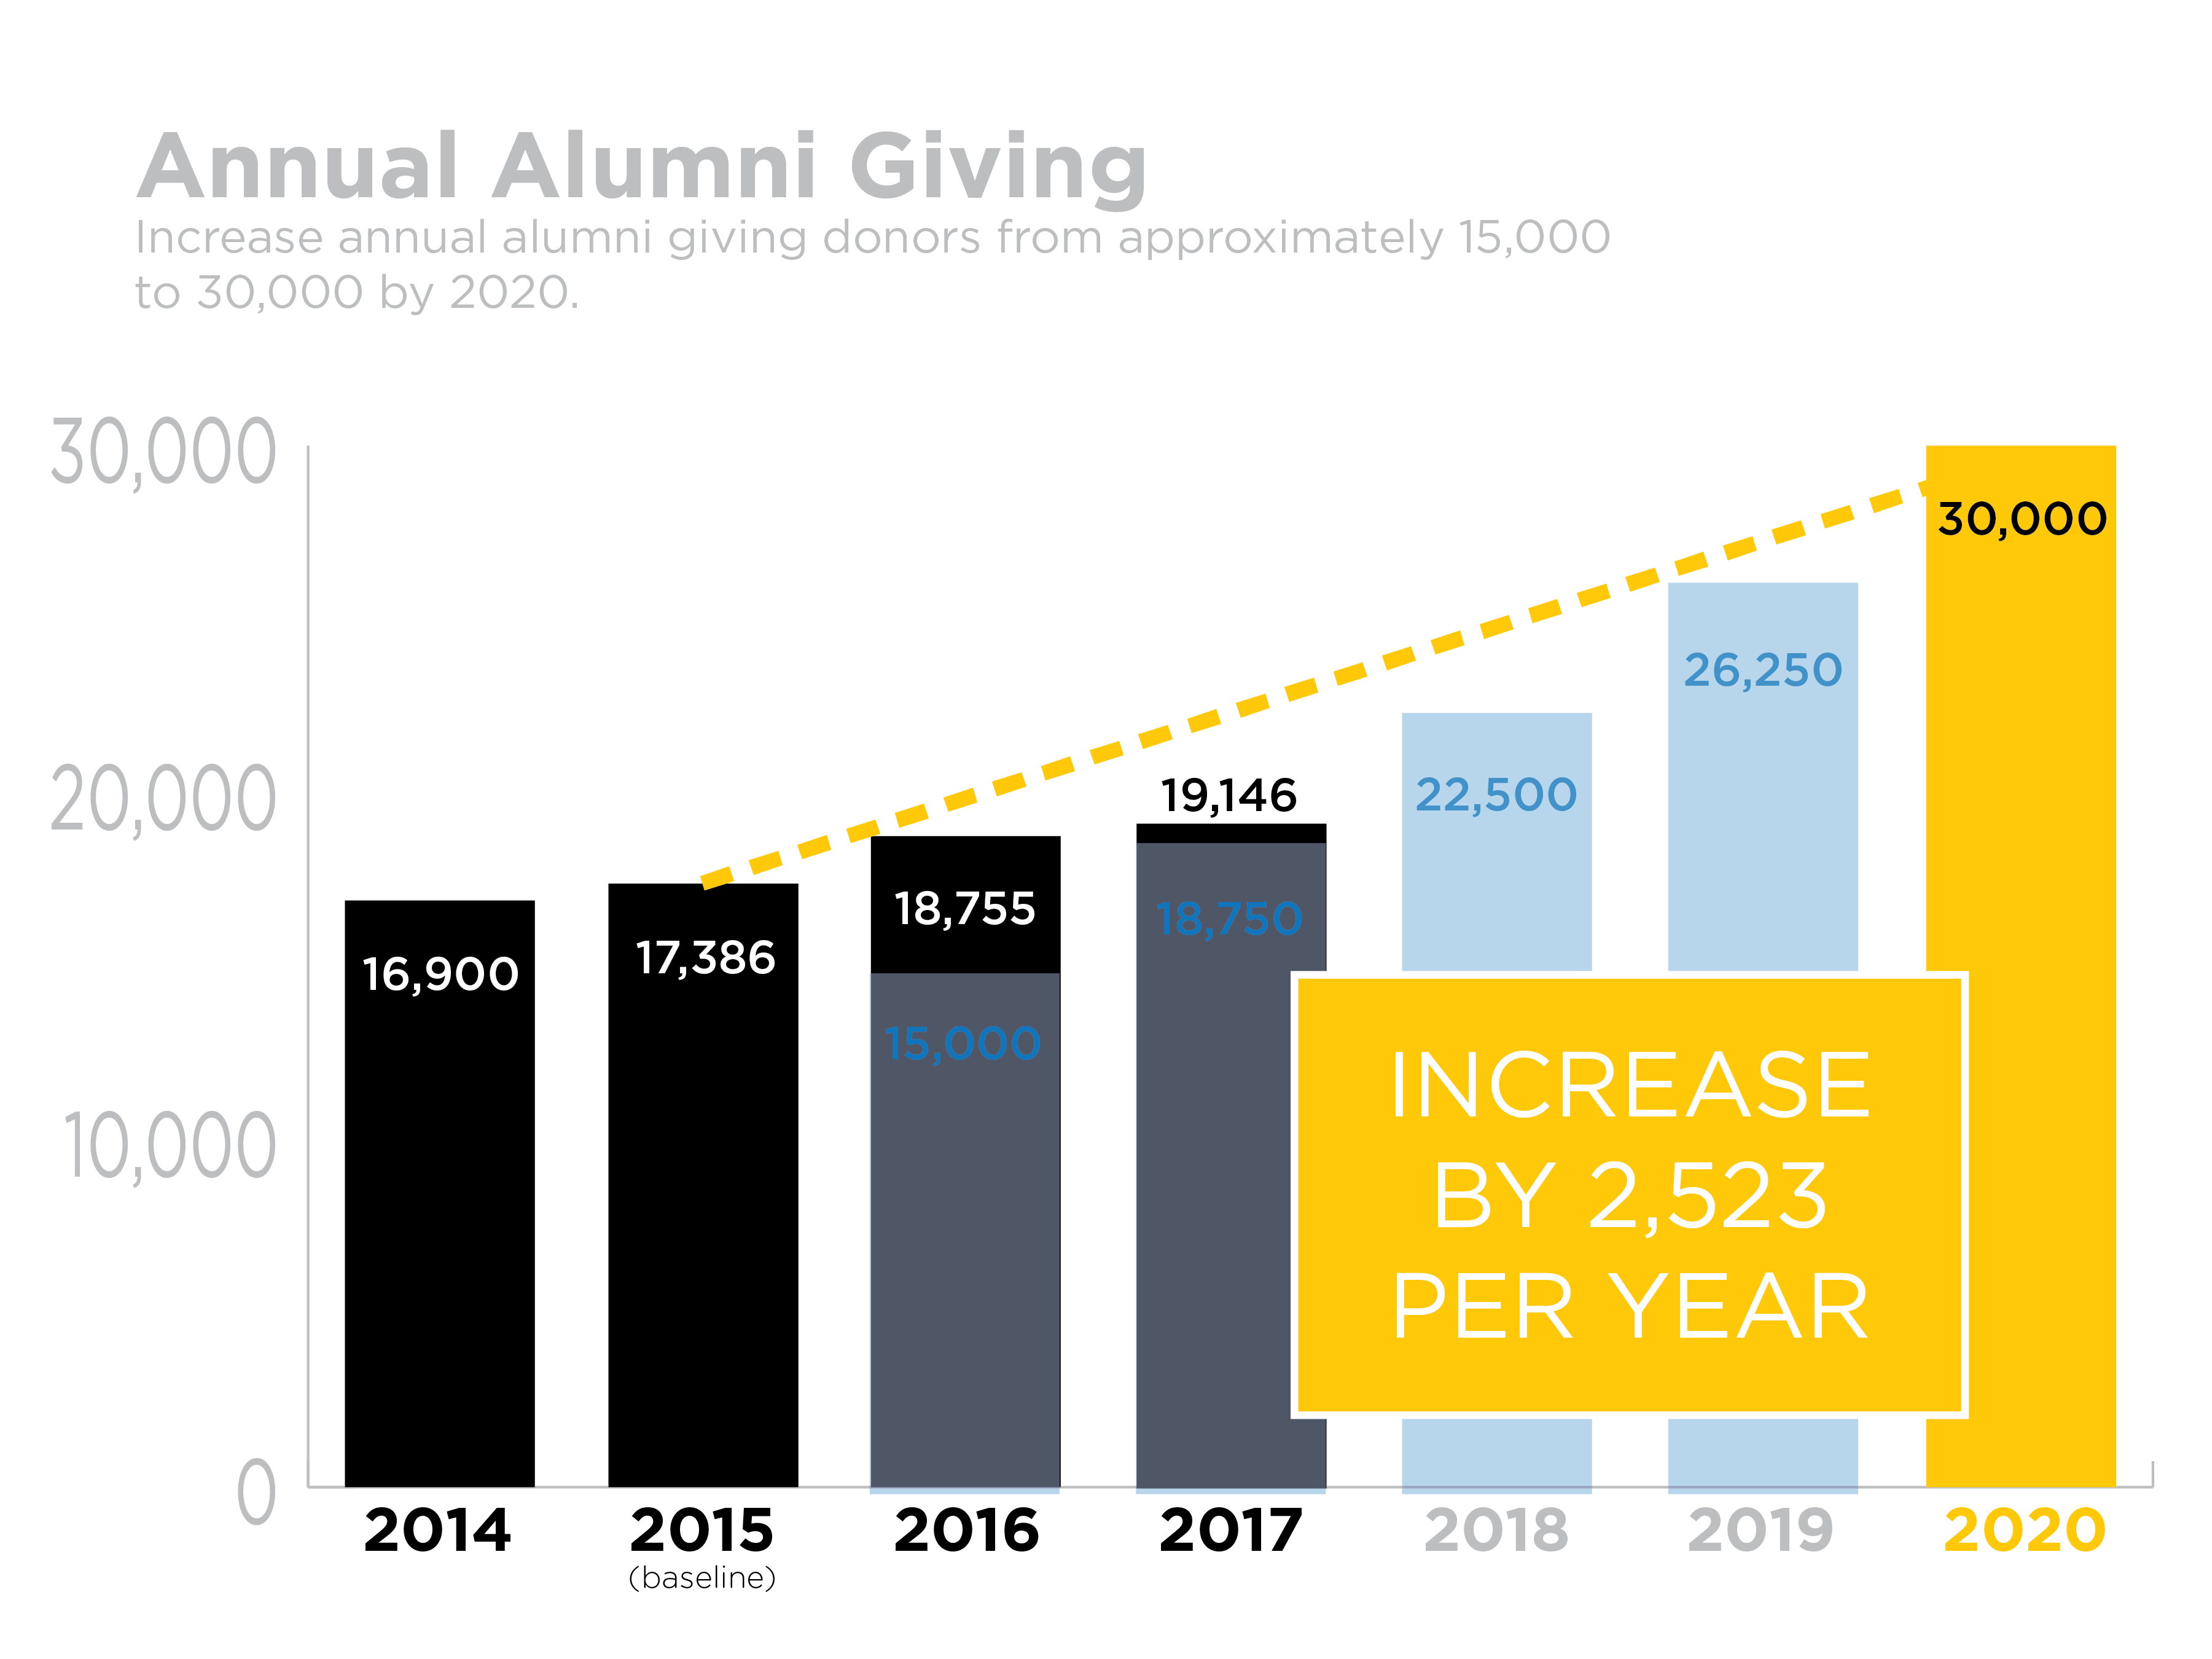 Goal 5 Progress Measurement - Annual Alumni Giving